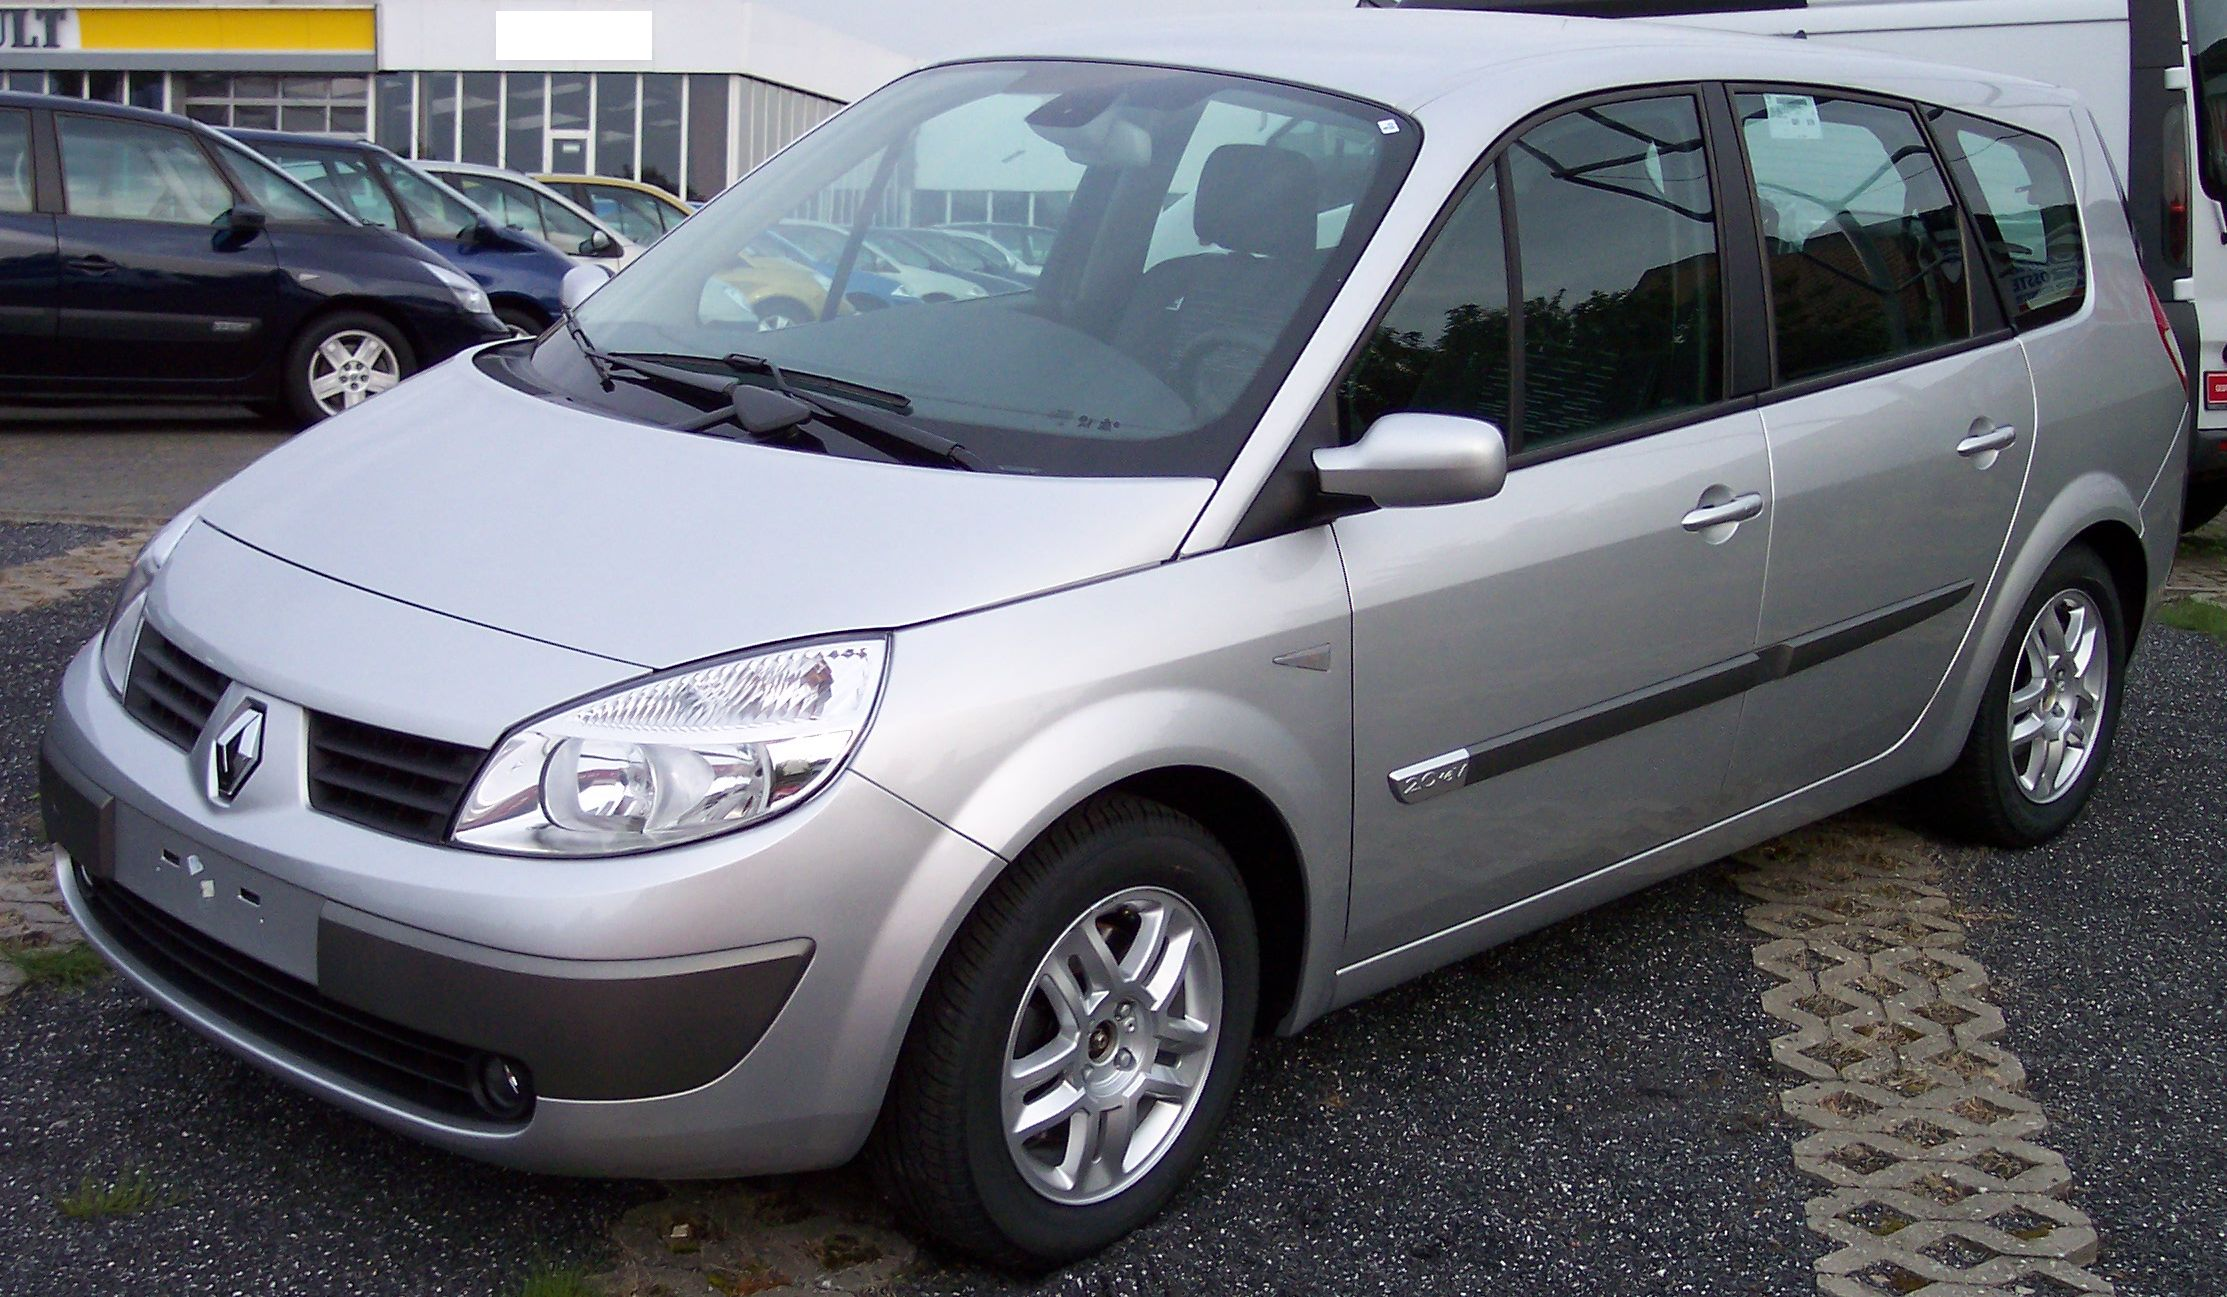 file renault scenic silver wikimedia commons. Black Bedroom Furniture Sets. Home Design Ideas